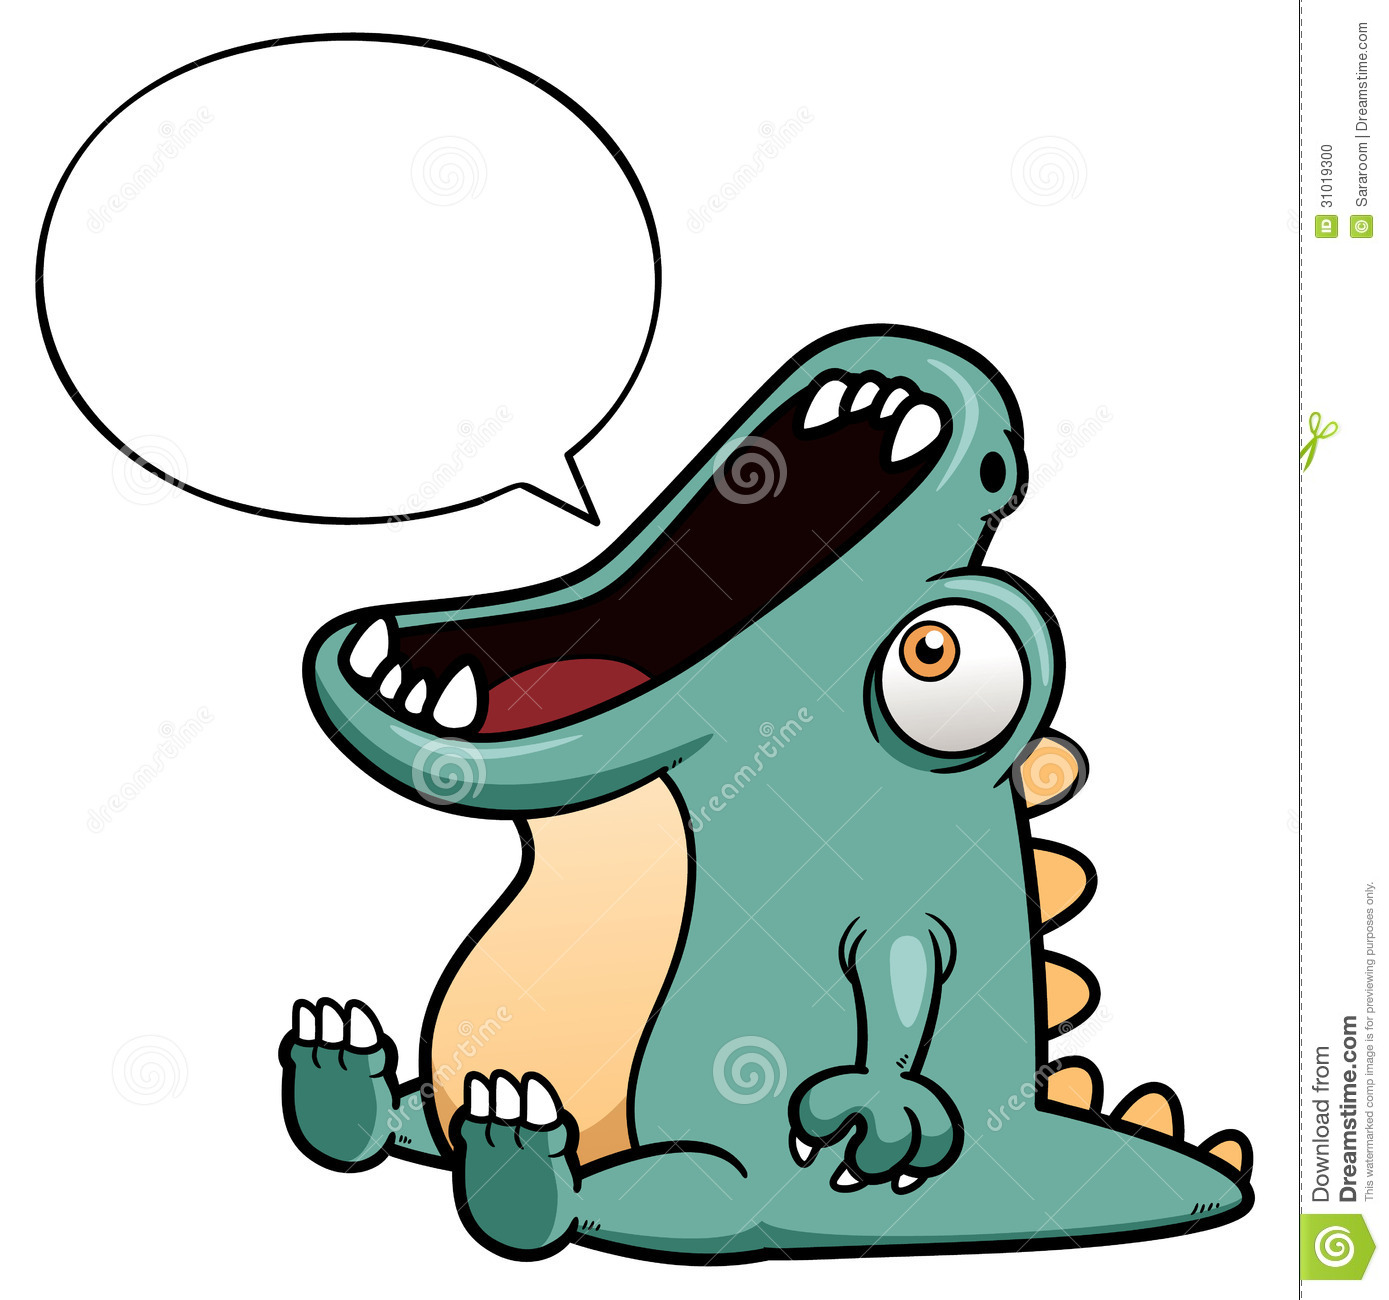 Dinosaur Cartoon With Speech Balloon Stock Photo - Image: 31019300